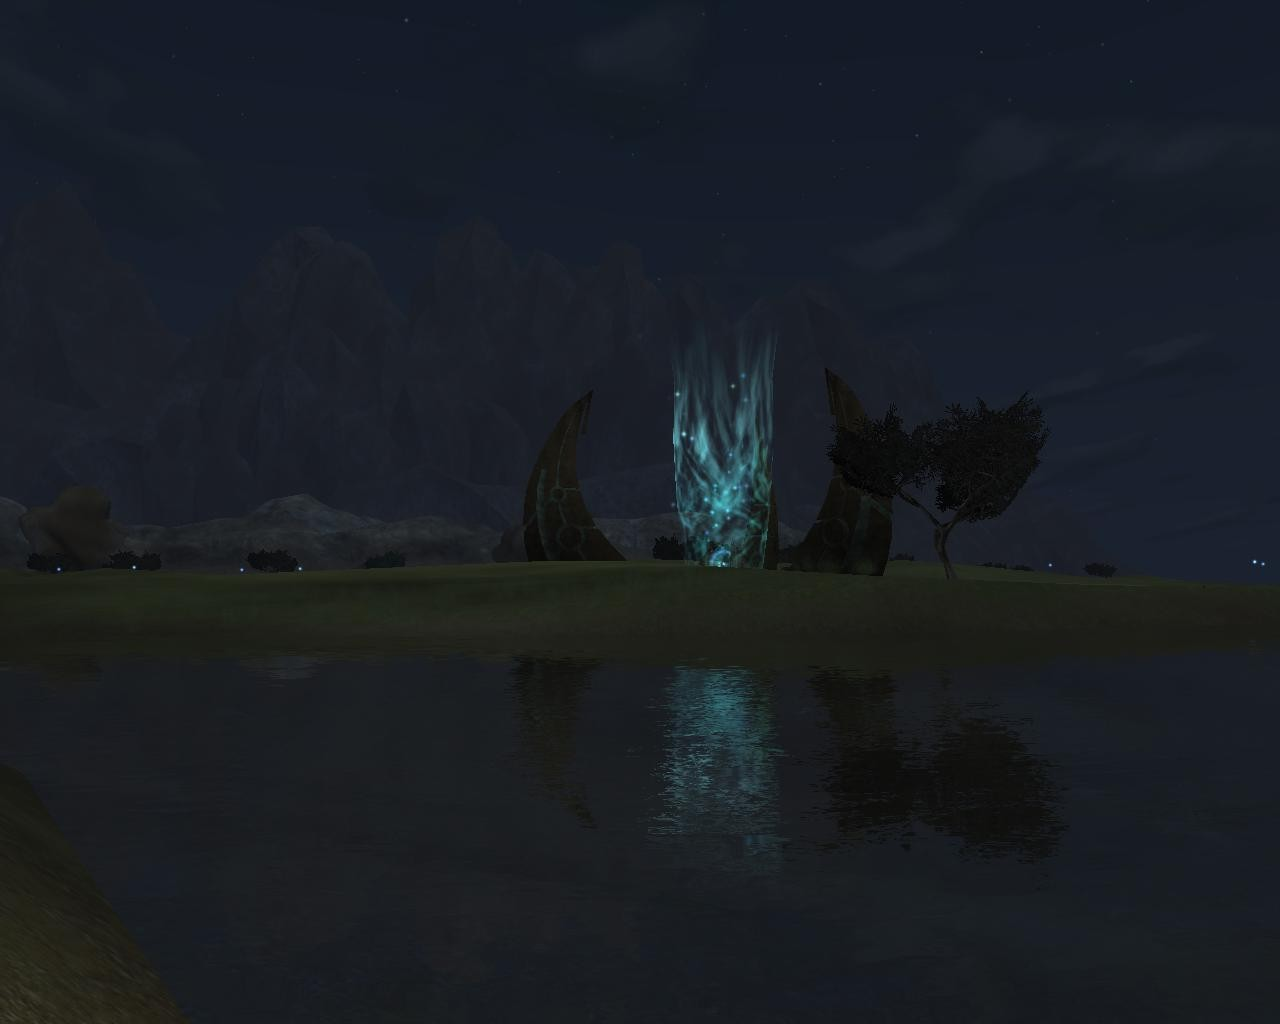 EverQuest II - Travel Spire in the Commonlands at night